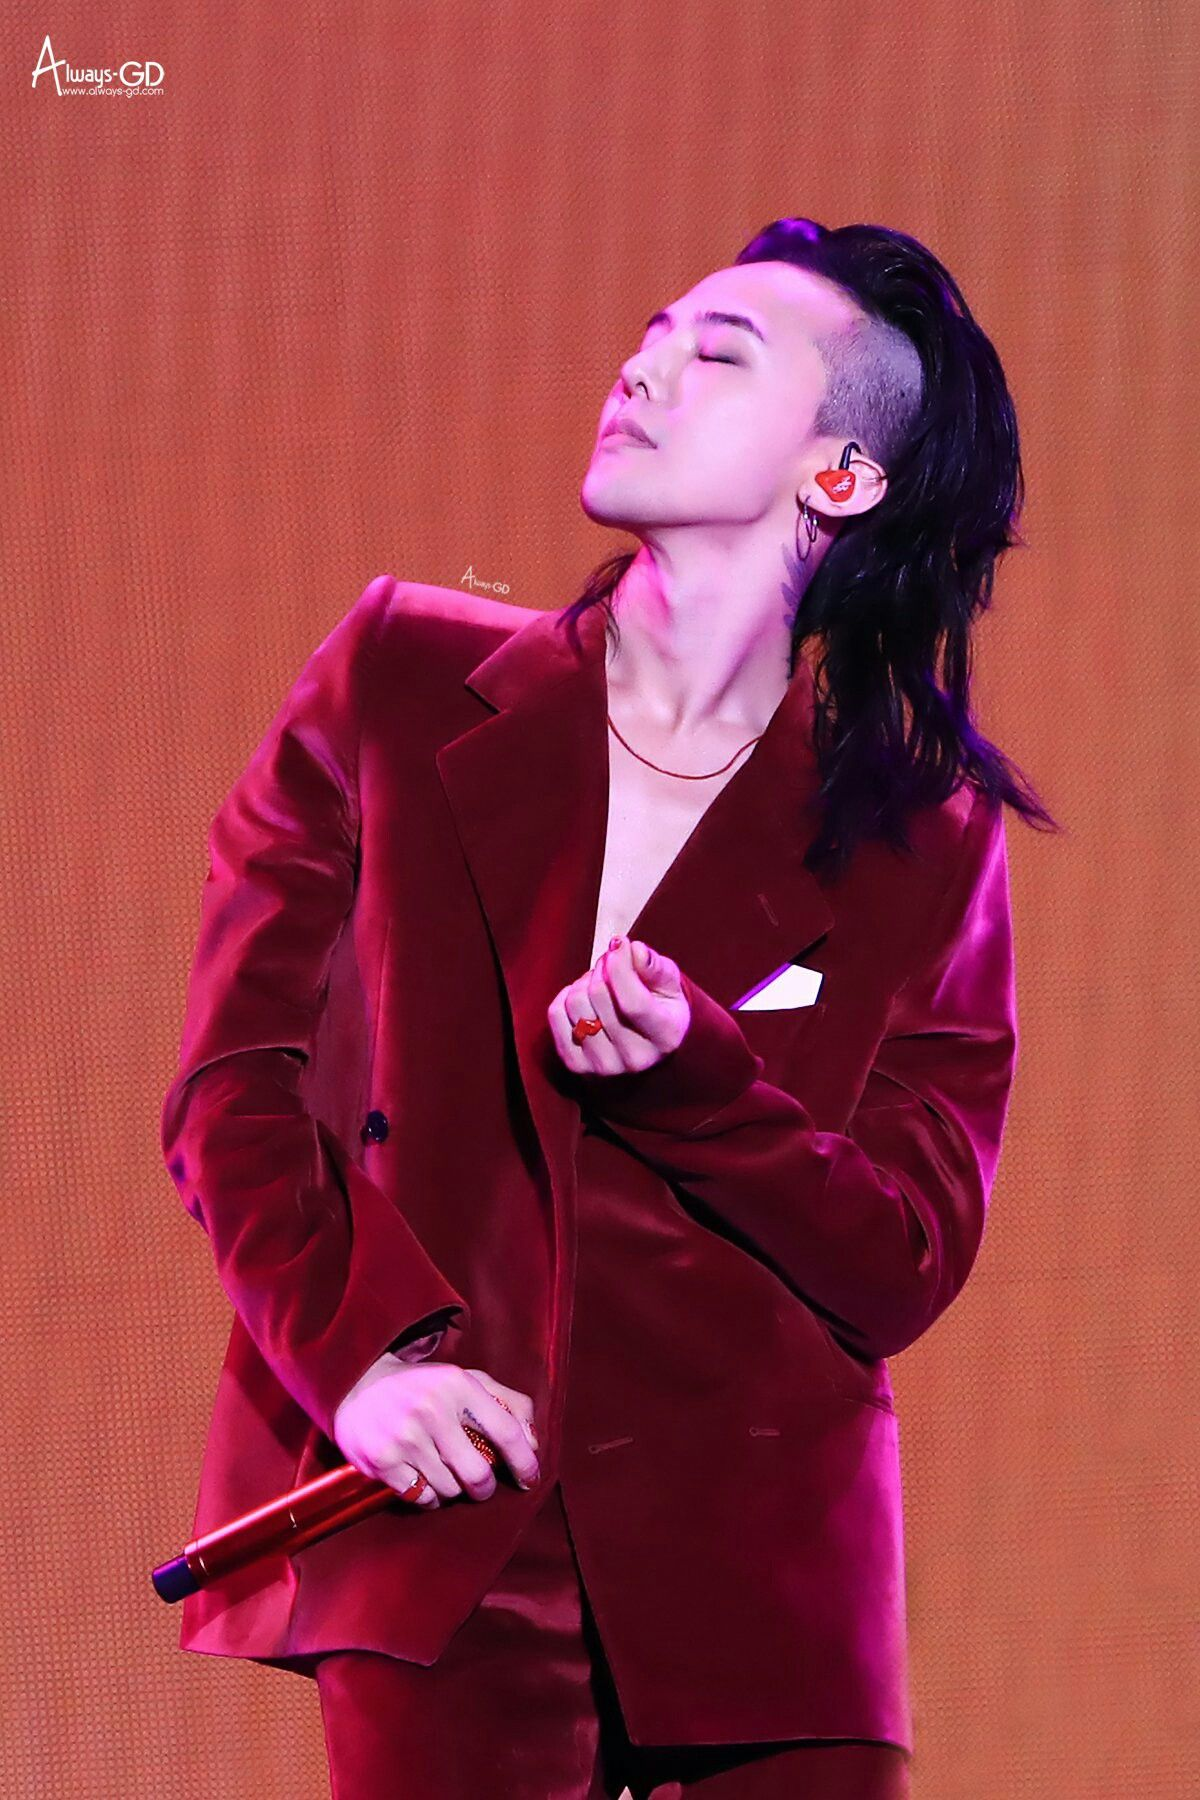 G Dragon S Hair On Point G Dragon Hairstyle G Dragon Korean Men Hairstyle